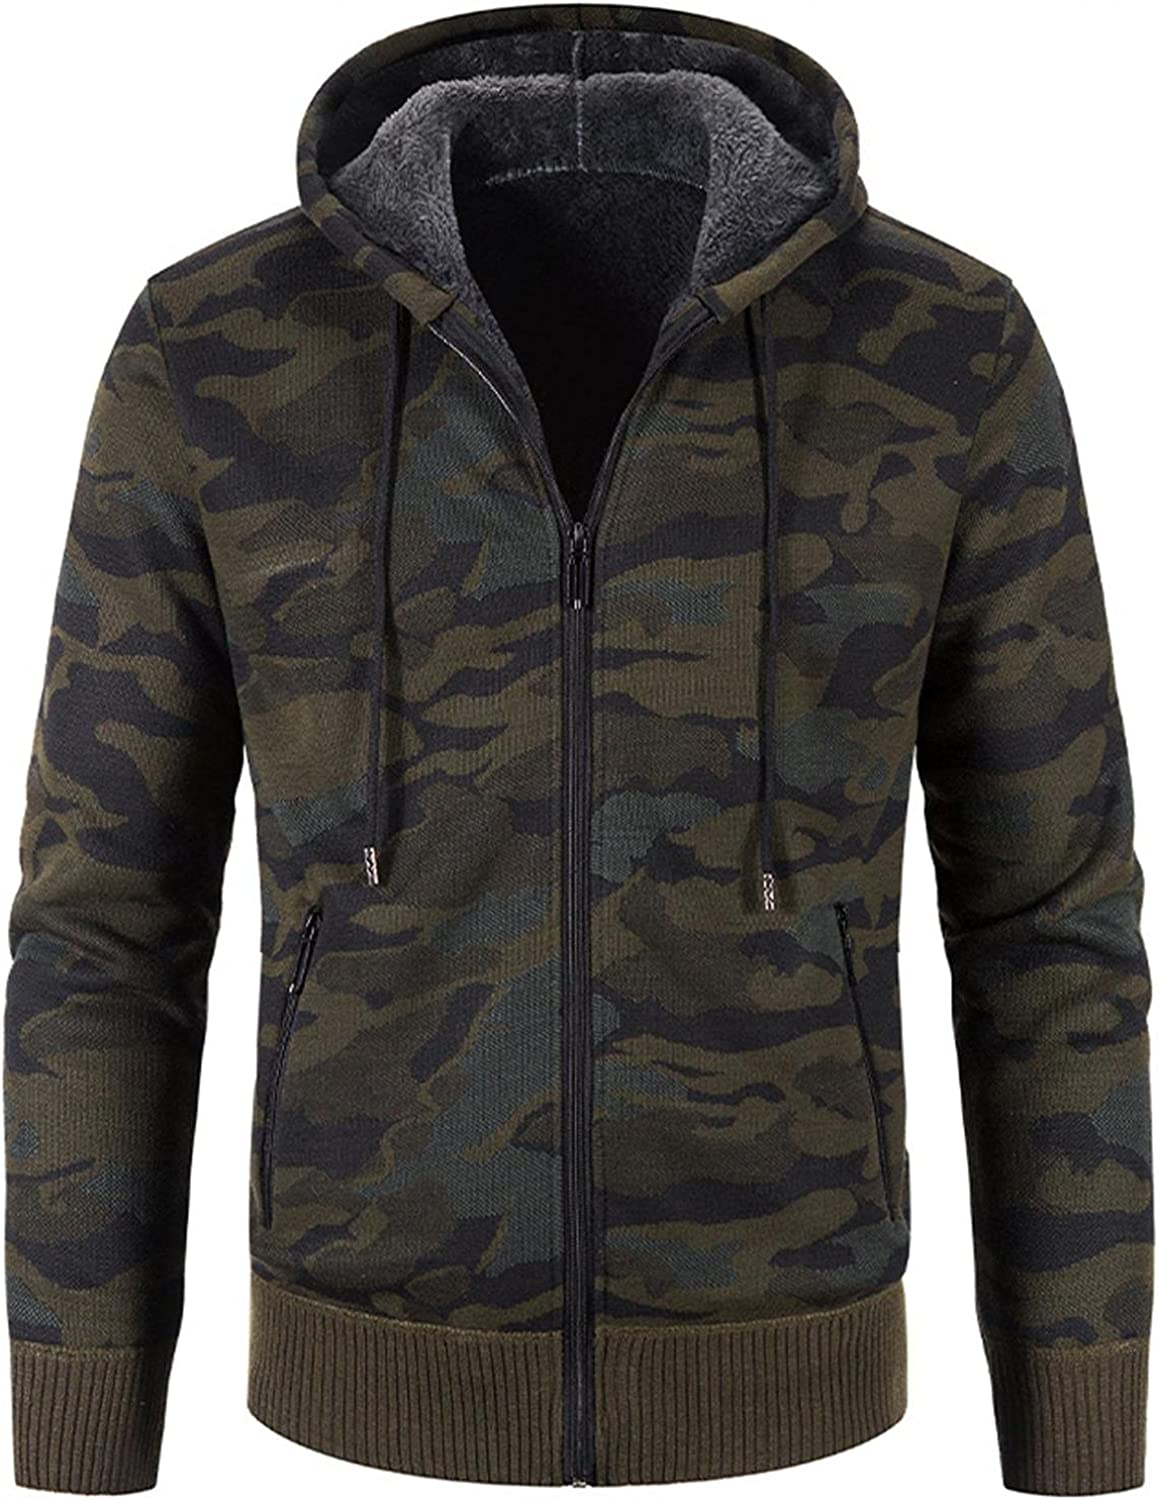 Aayomet Hoodies Cardigan for Men Winter Warm Camouflage Zip Long Sleeve Casual Hooded Pullover Tops Blouses Coat with Pocket